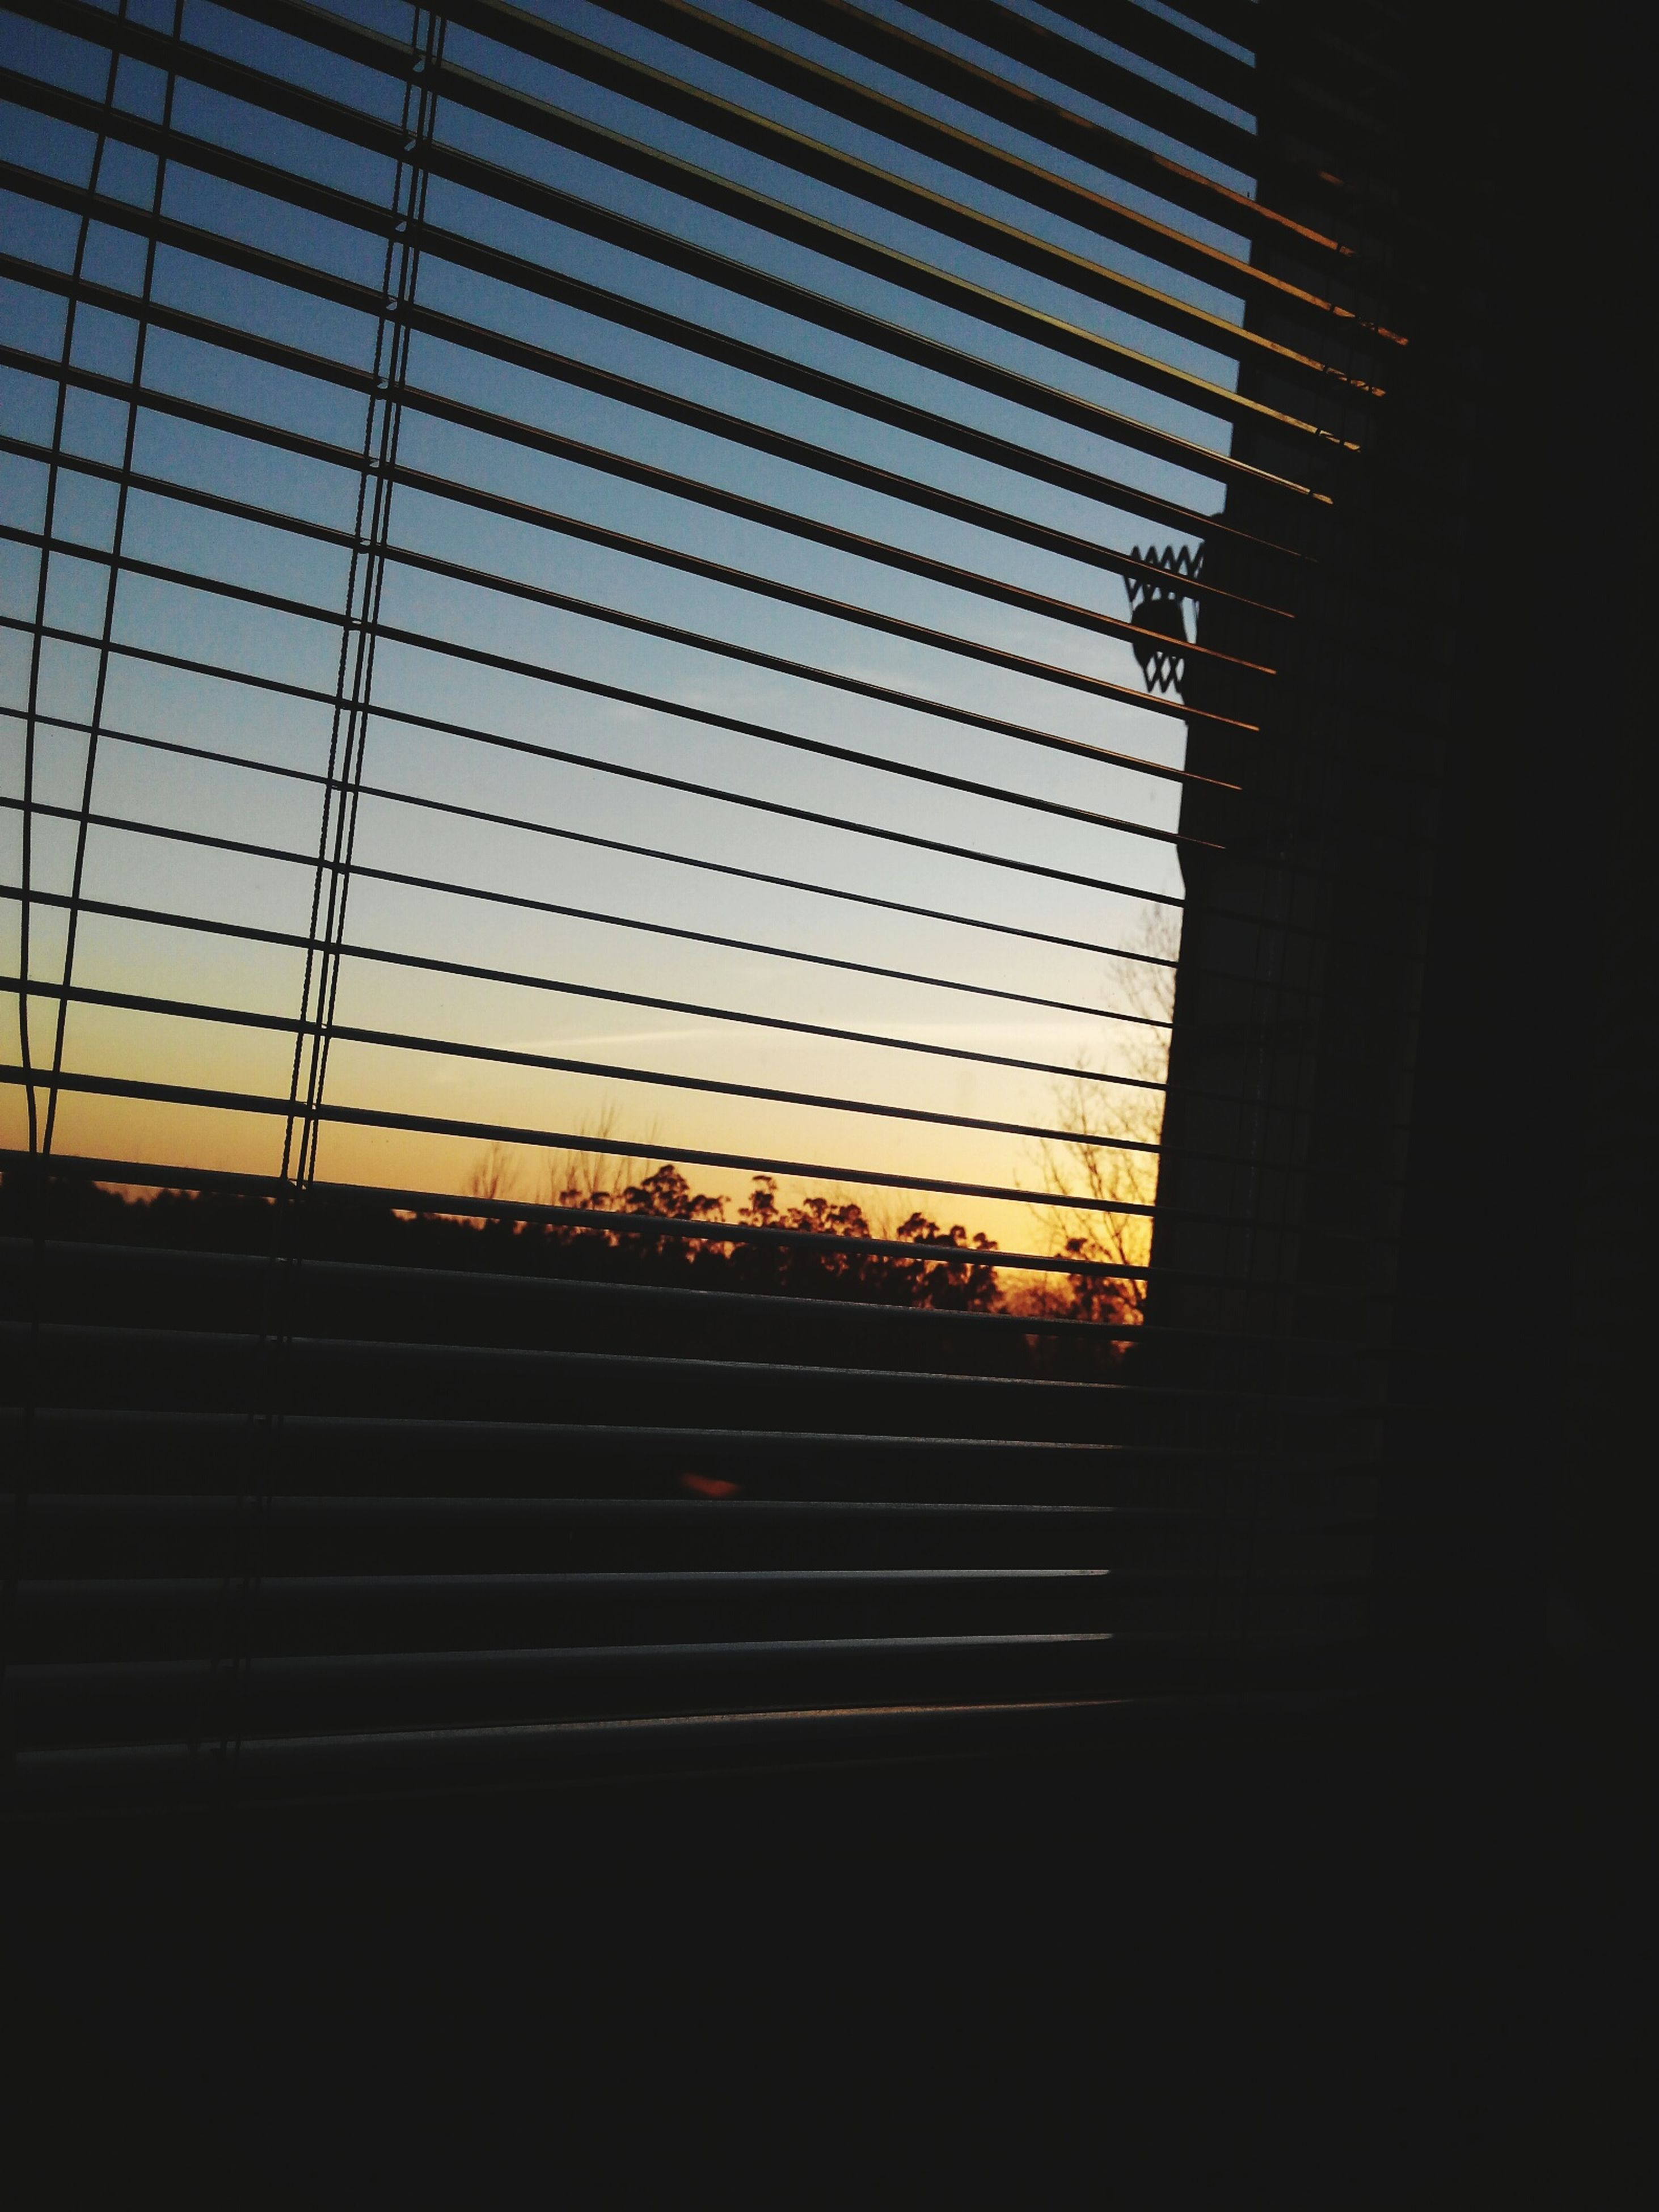 sunset, silhouette, window, orange color, indoors, dark, built structure, architecture, sky, glass - material, illuminated, no people, building exterior, pattern, transparent, modern, blinds, building, sunlight, city